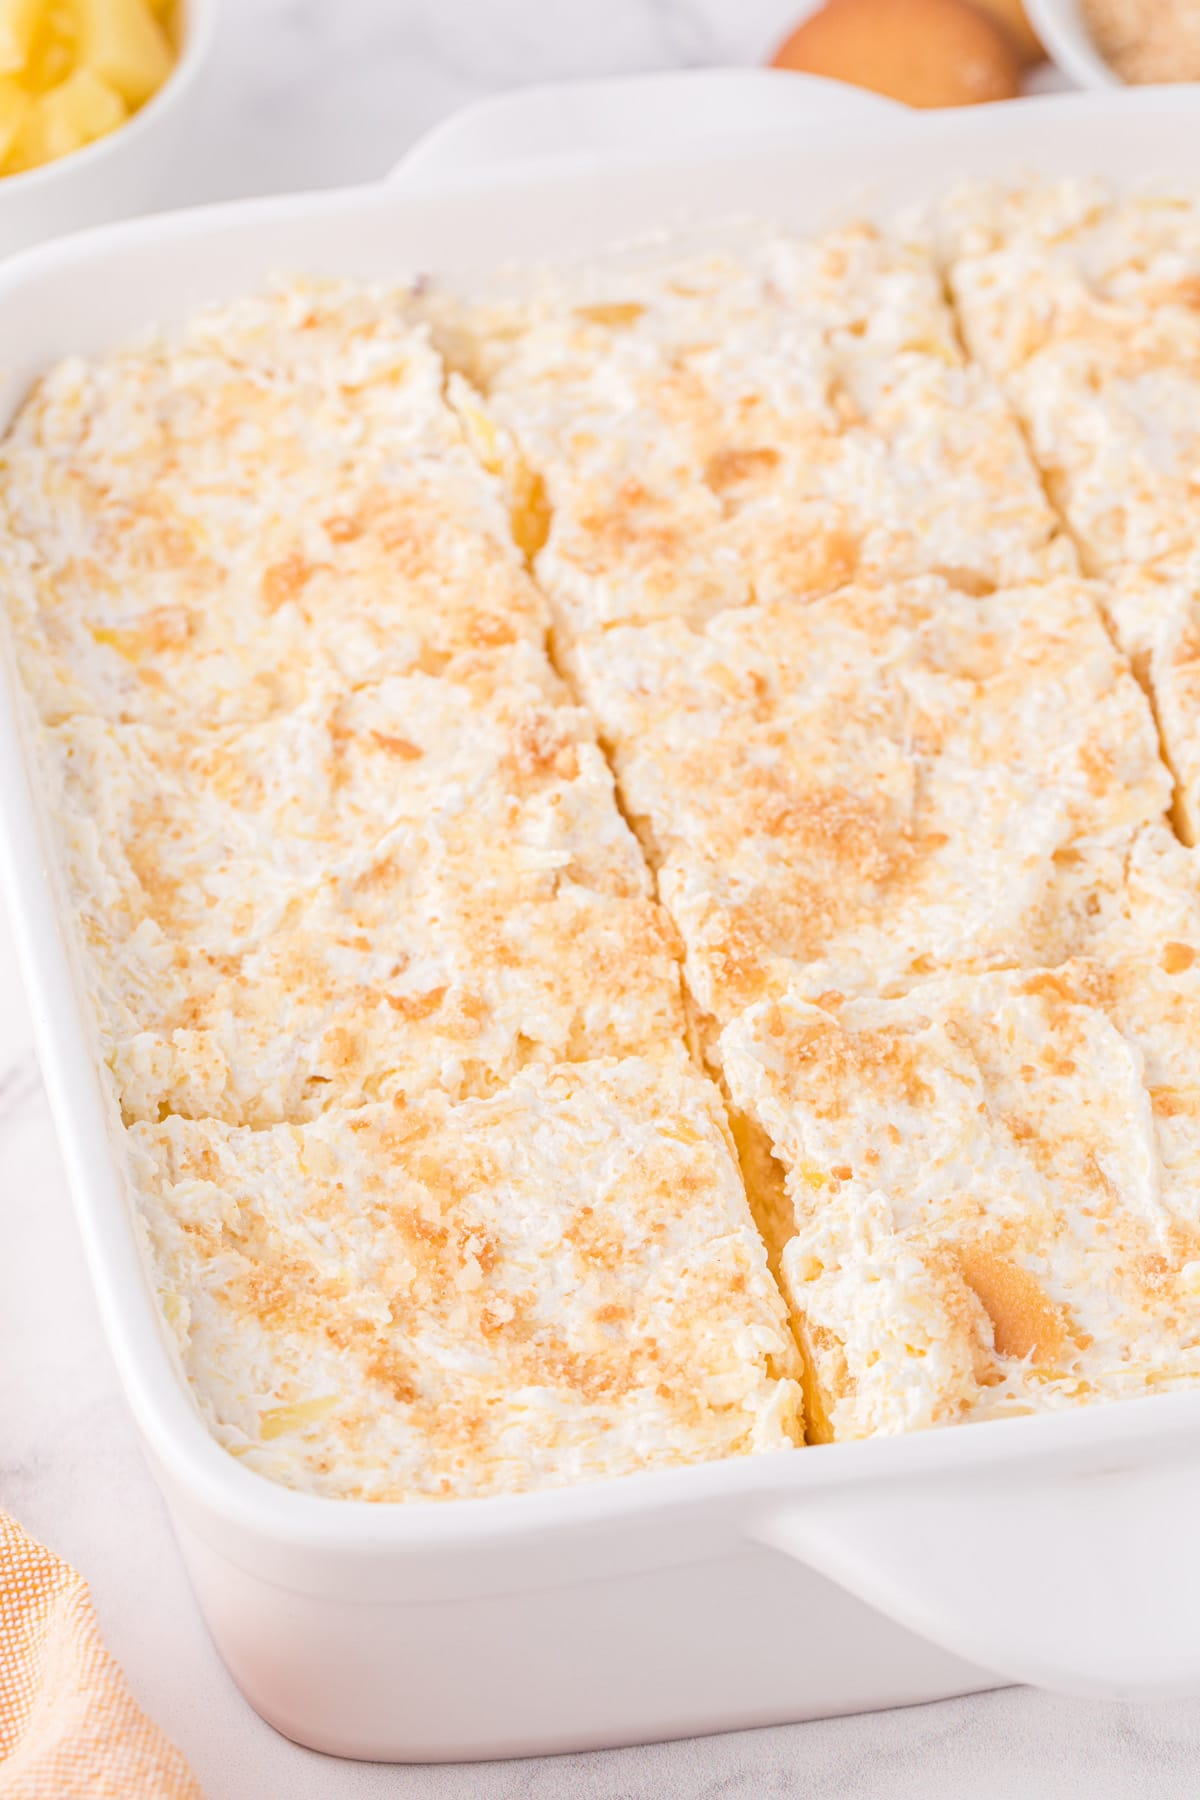 pineapple delight in a baking pan